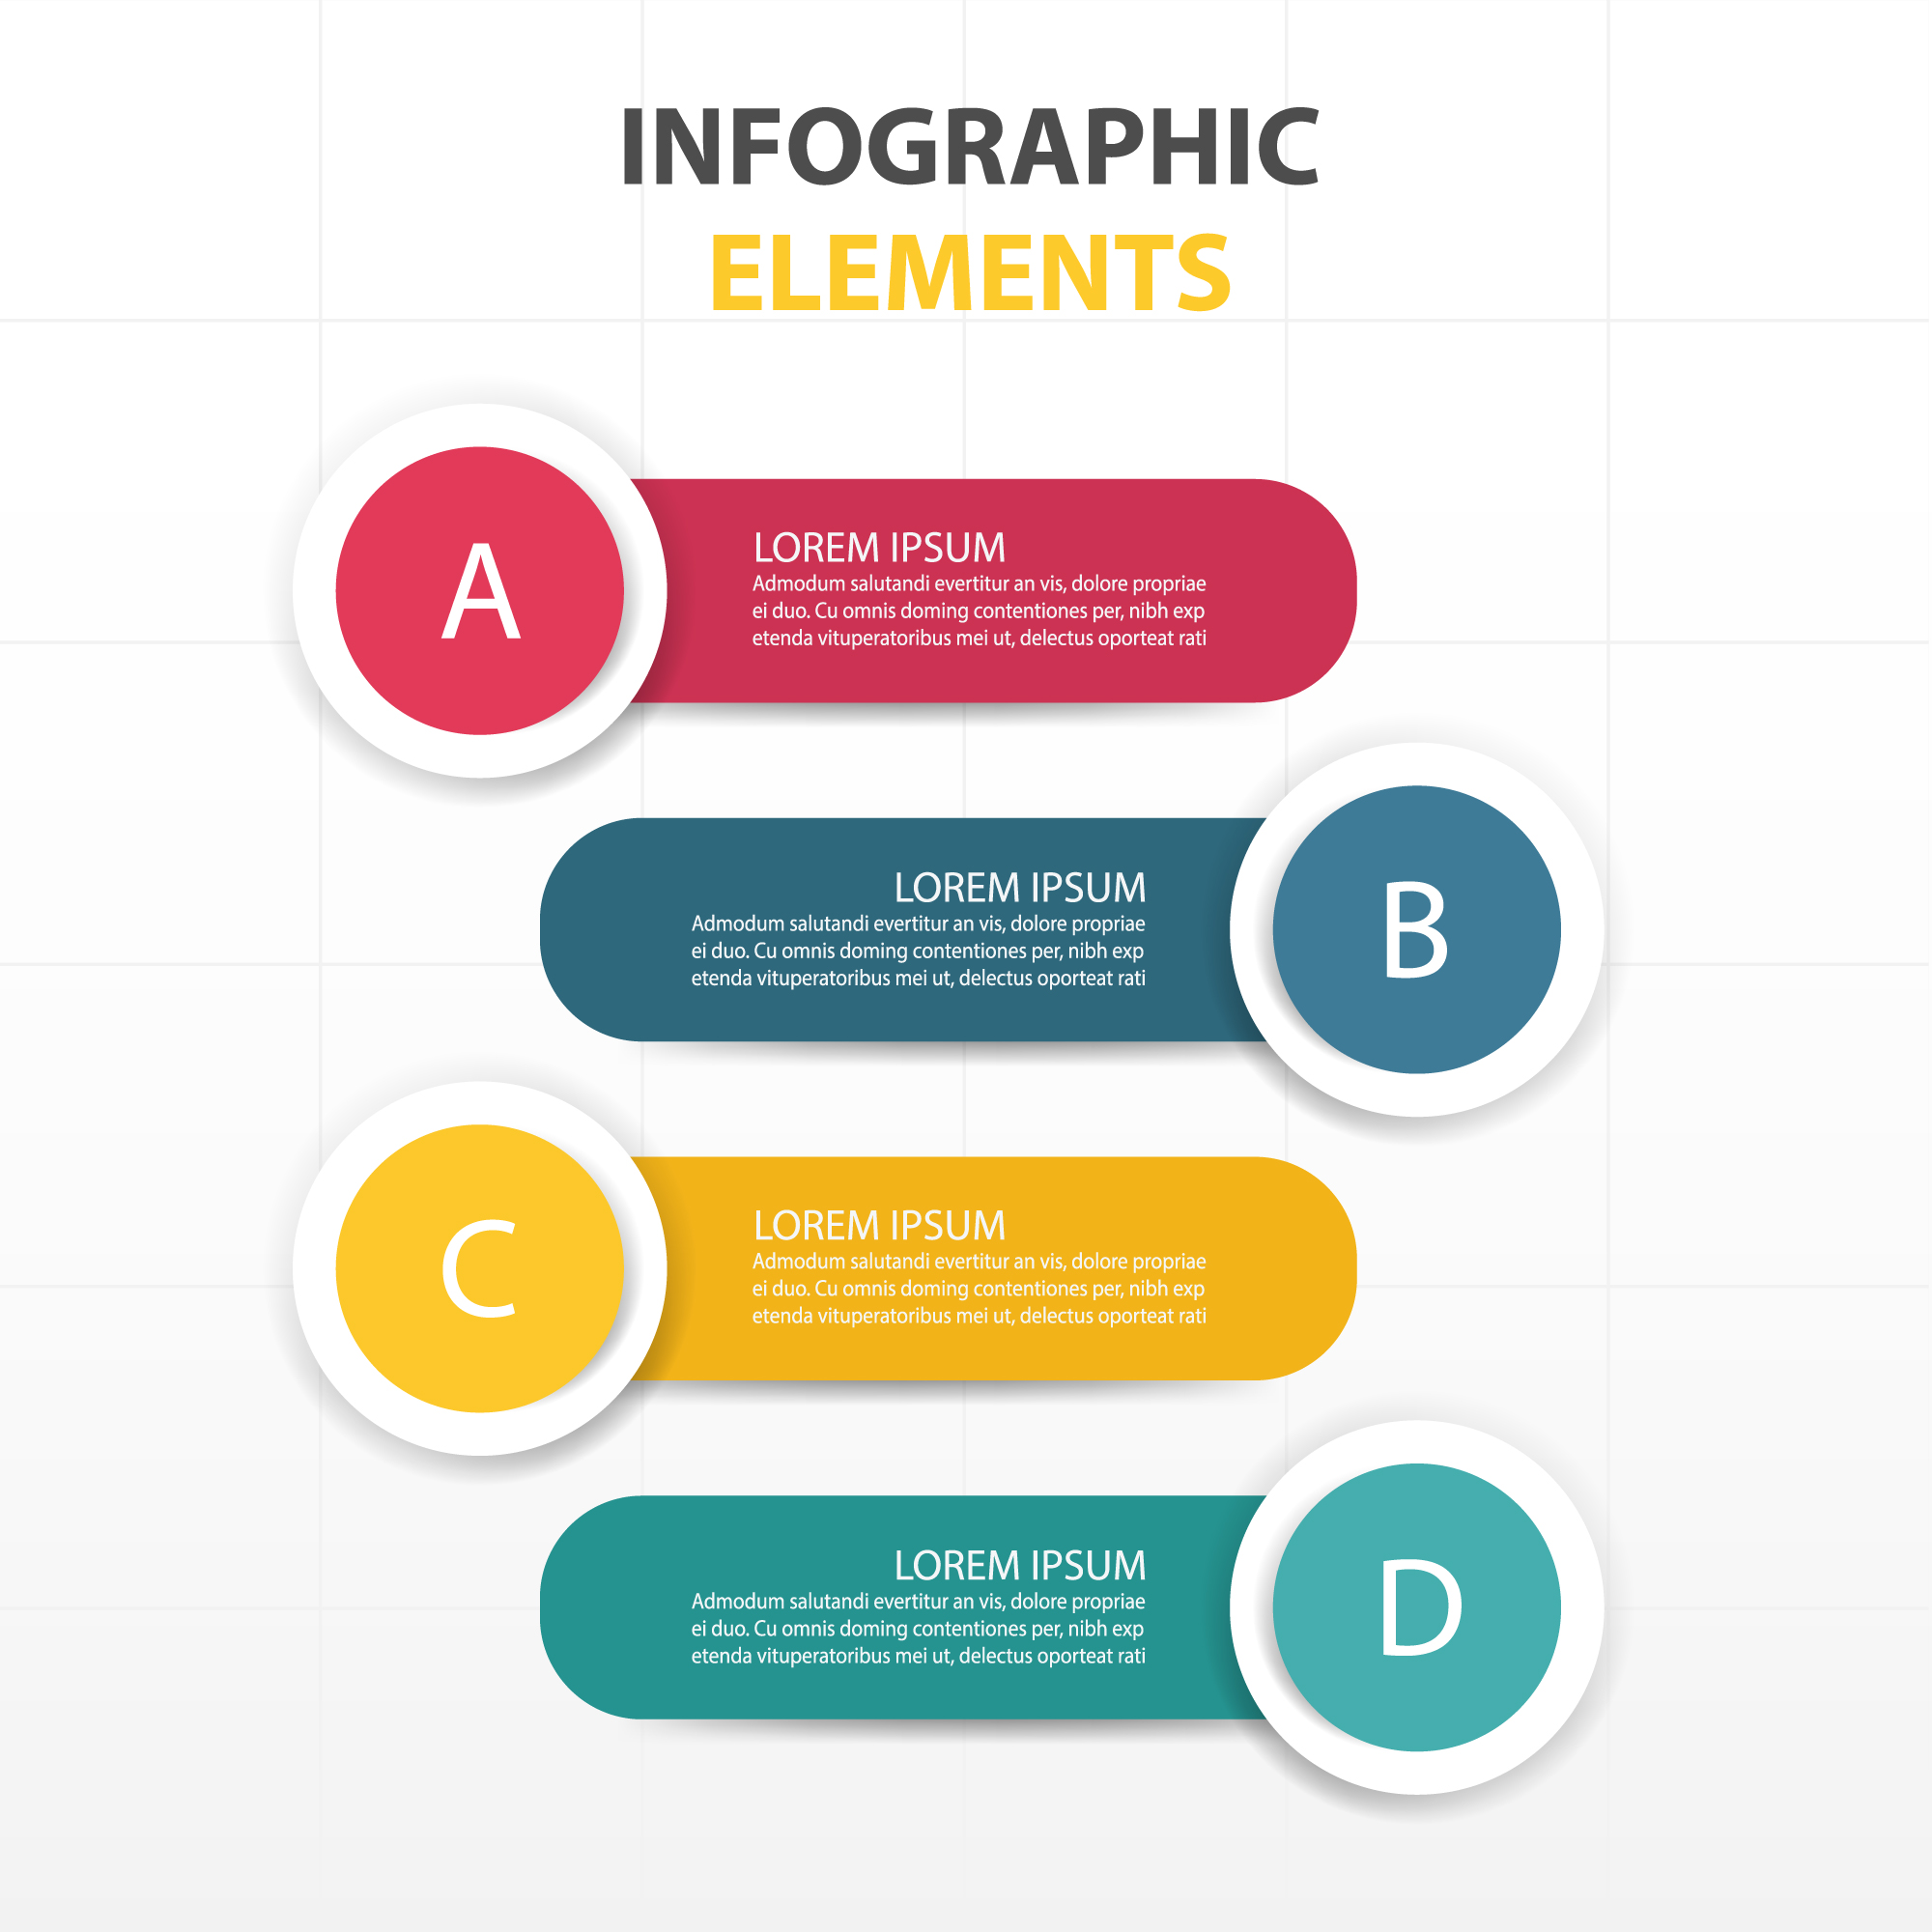 Infographic elements, round shapes